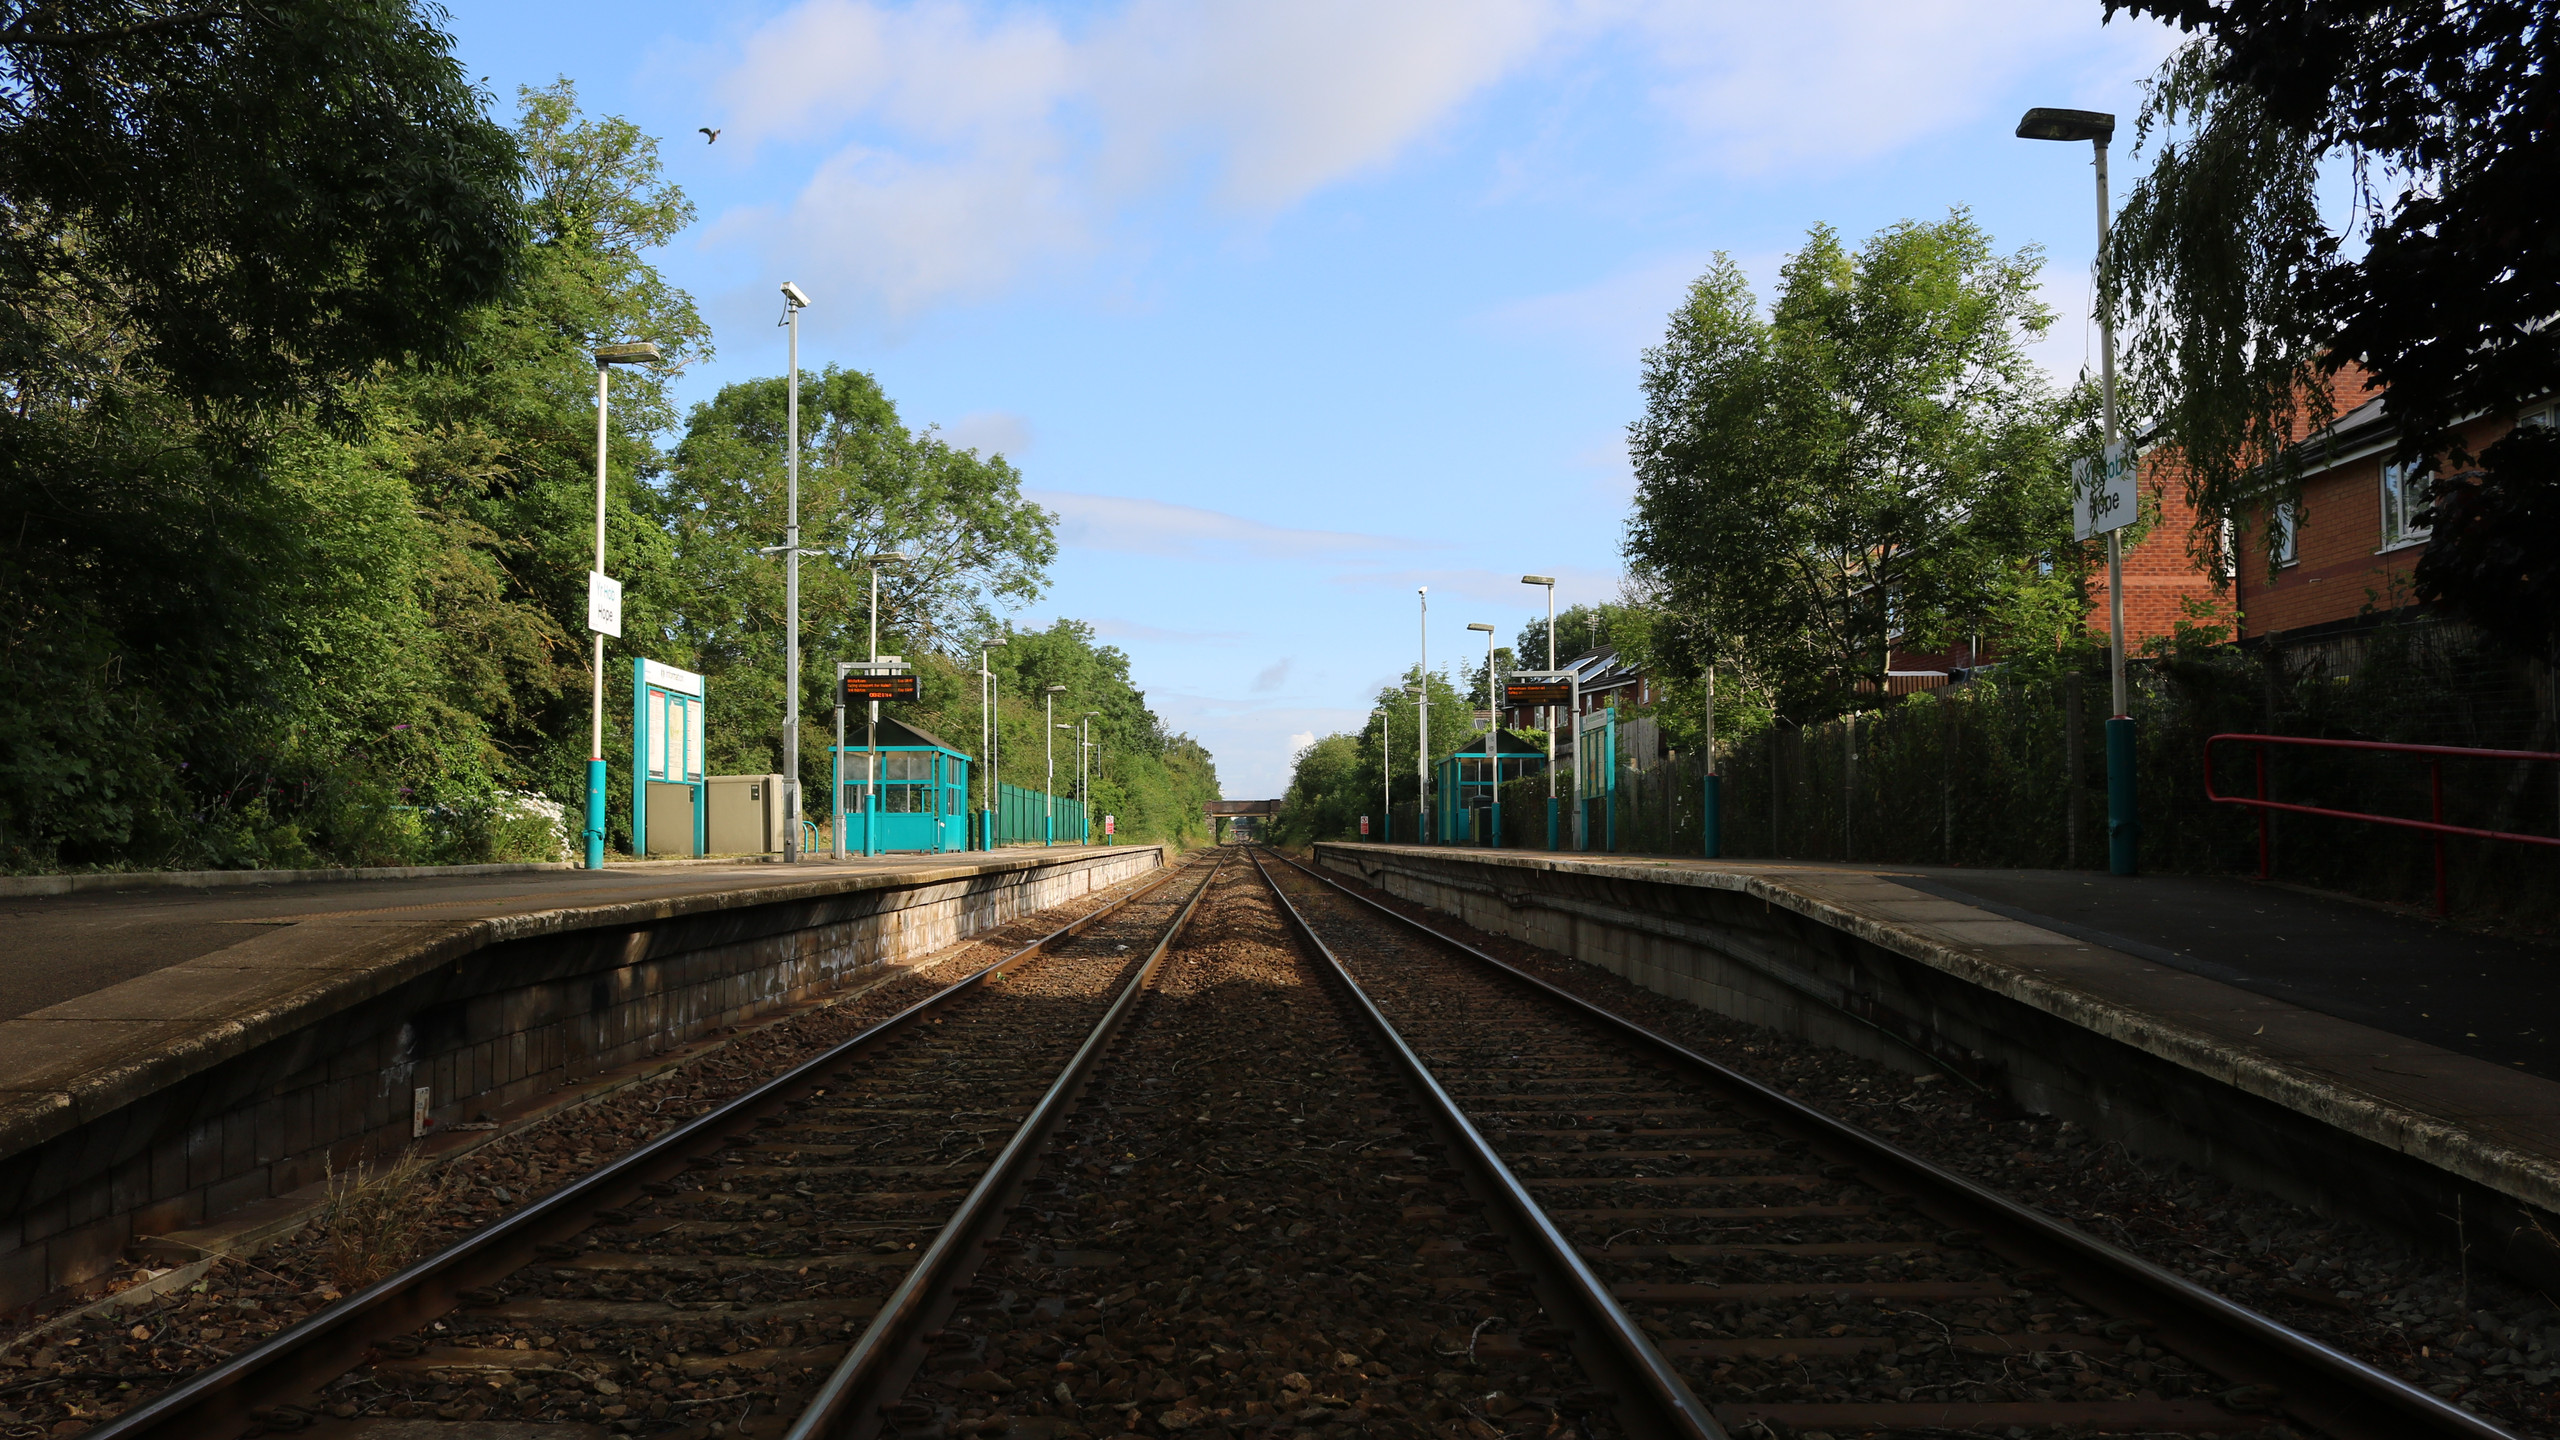 Looking north from the crossing at Hope (Flintshire)